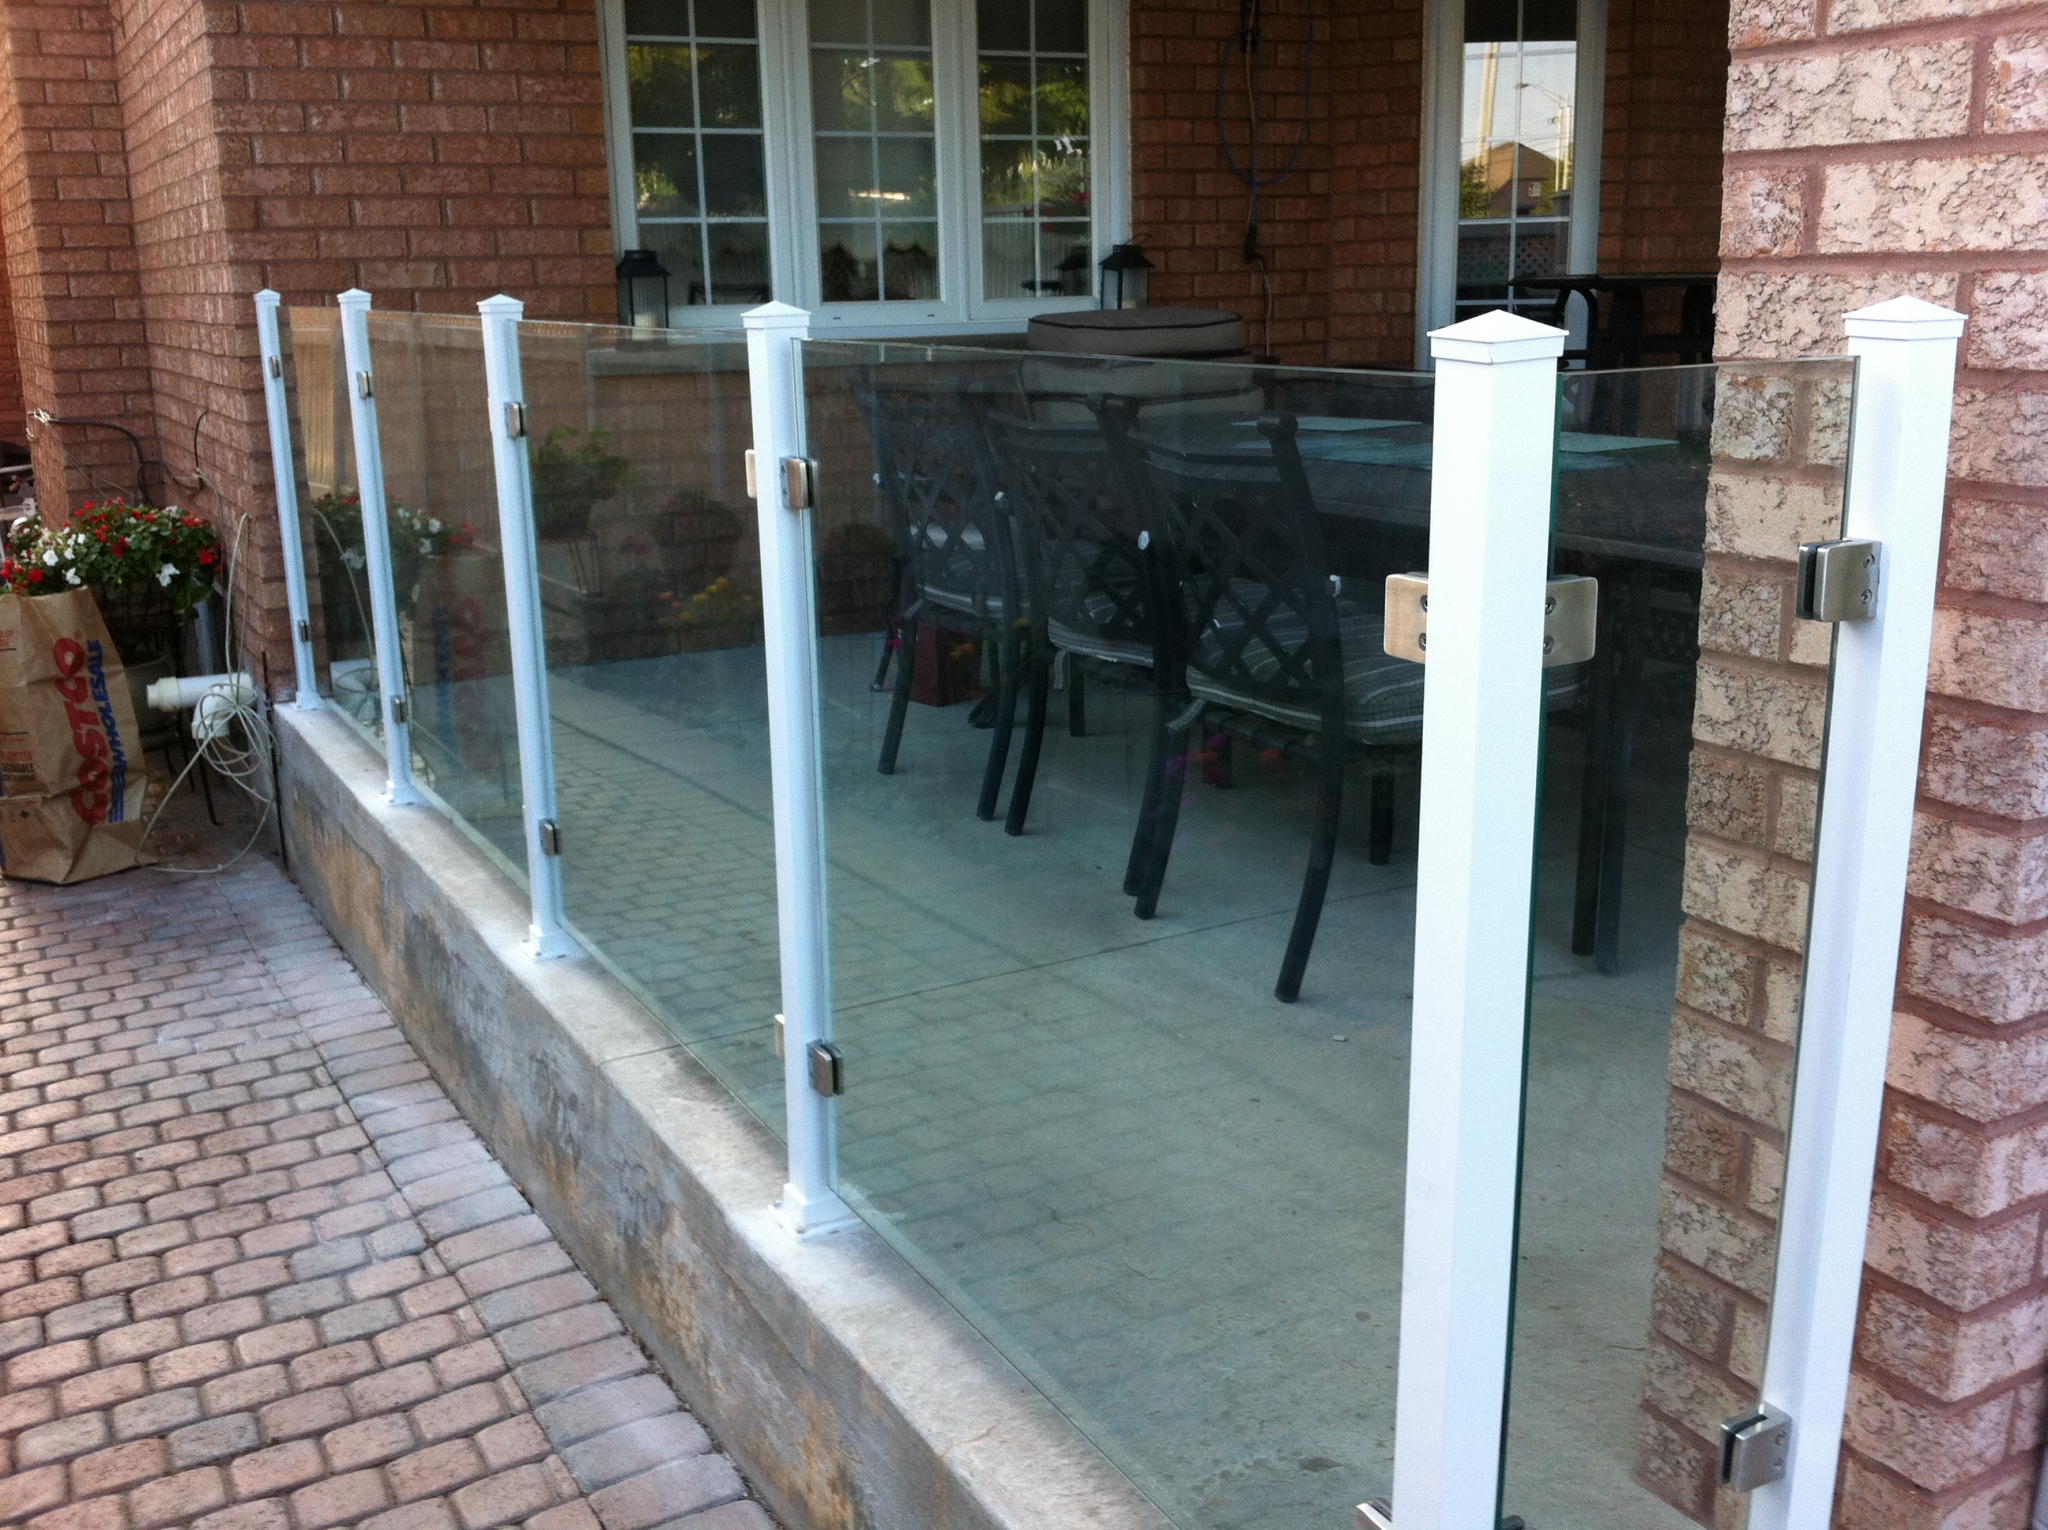 Porch railings of glass